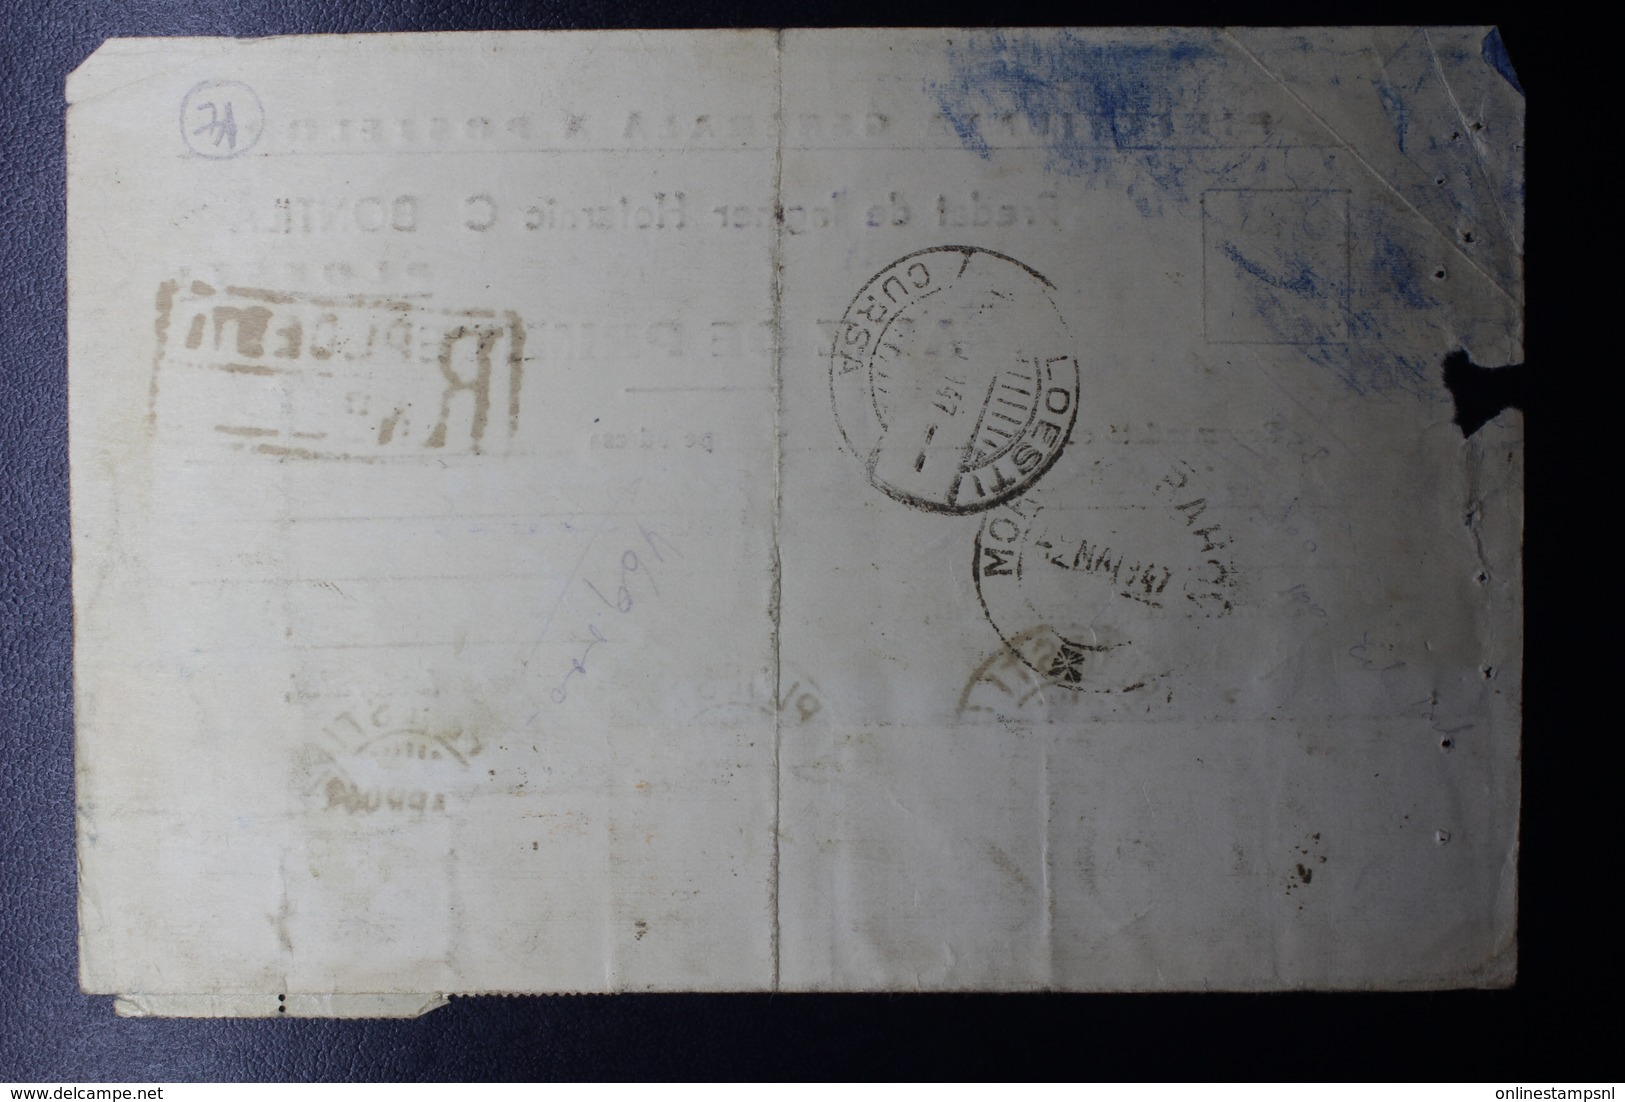 Romania Advise Of Delivery Mixed Stamps, From Ploesti Cds To Morem Cds, 1947 - Brieven En Documenten